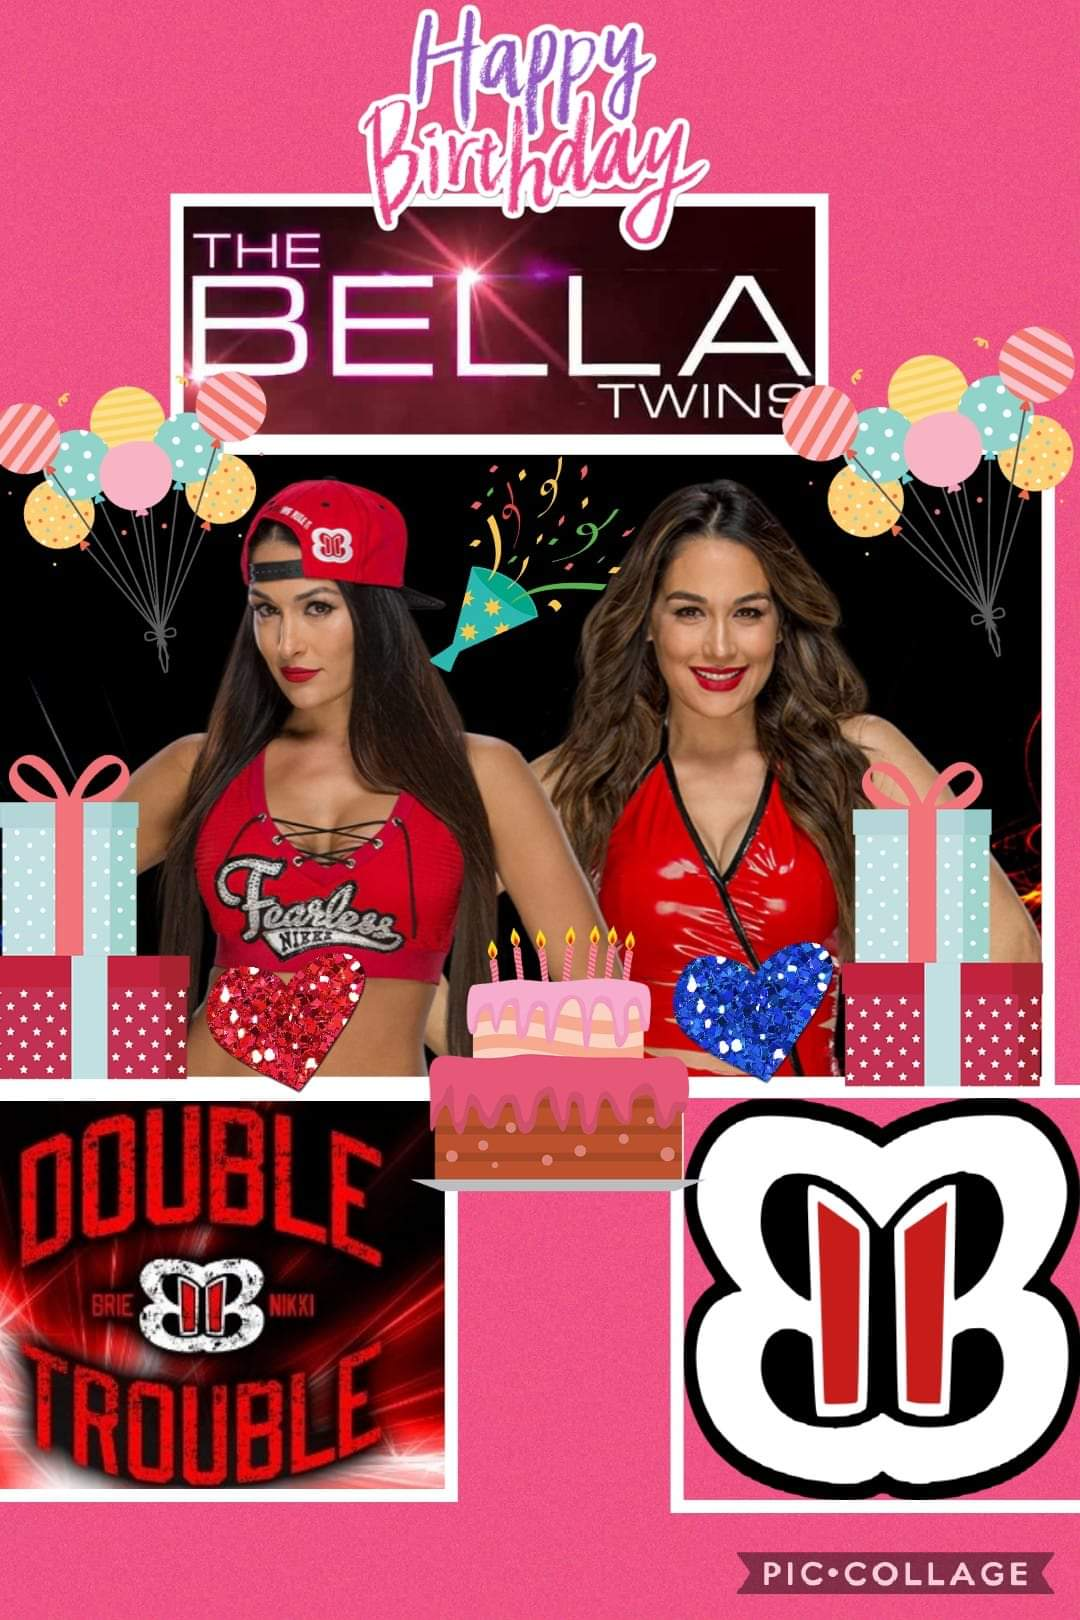 Happy birthday to the bella twins